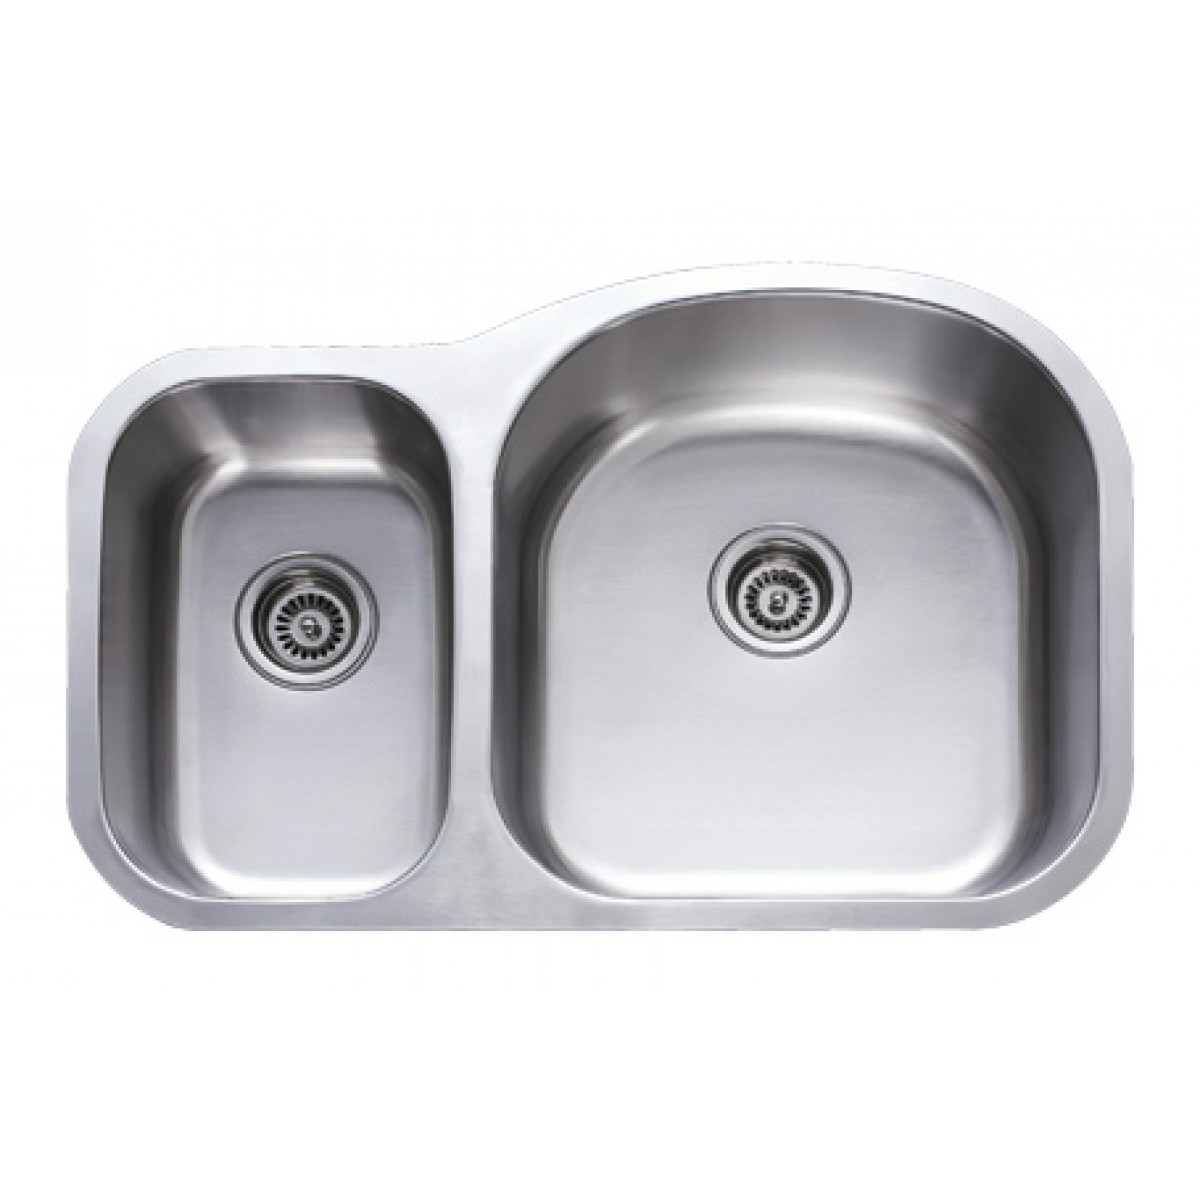 Stainless Steel Double Sink 31 Inch Stainless Steel Undermount 30 70 Double Bowl